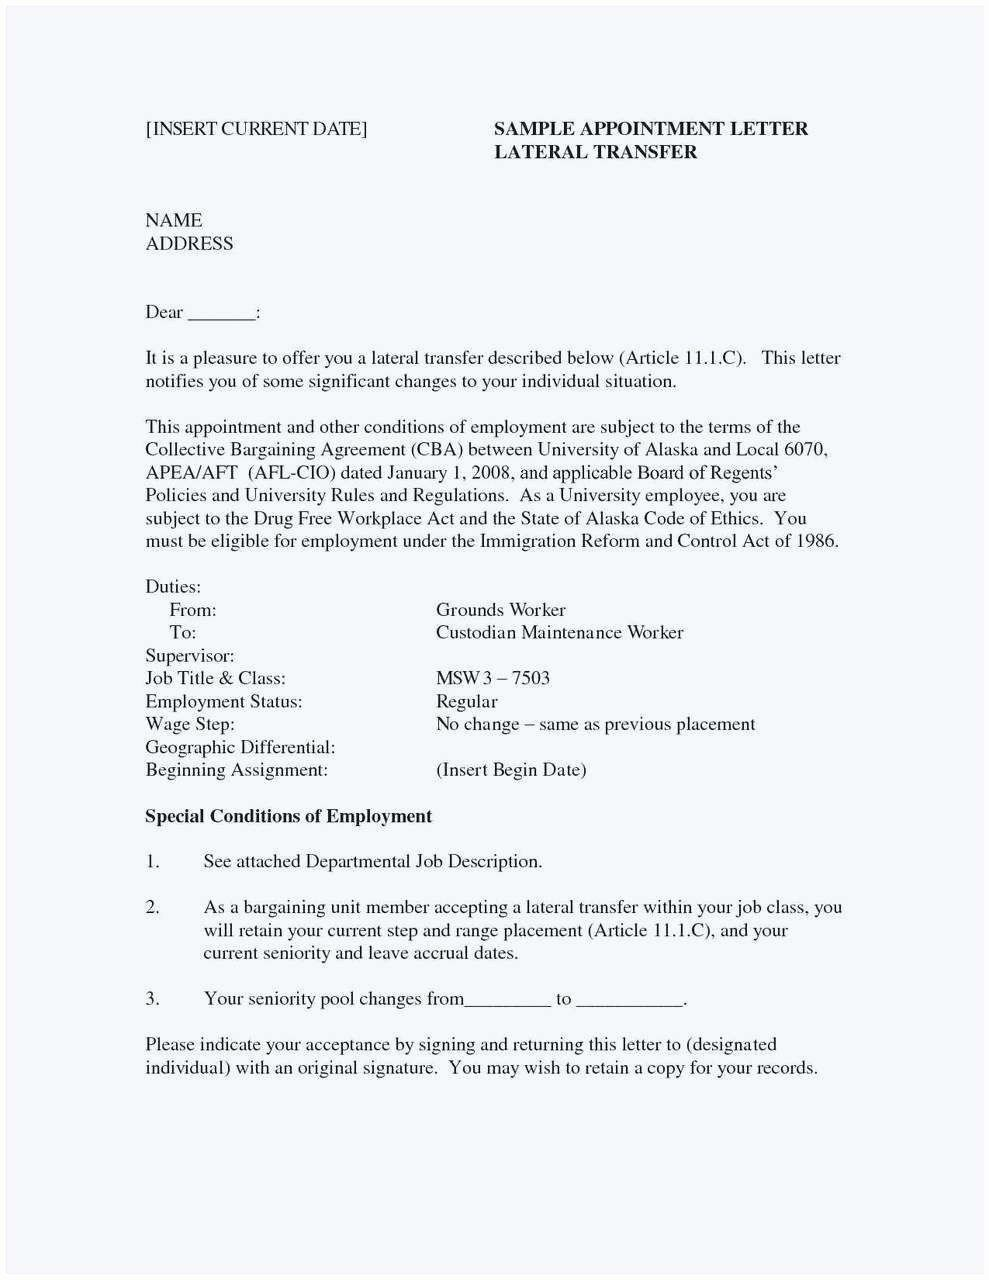 Clinical Research Coordinator Resume Lovely 10 Clinical Research Coordinator Resume In 2020 Cover Letter For Resume Cover Letter Template Cover Letter Example